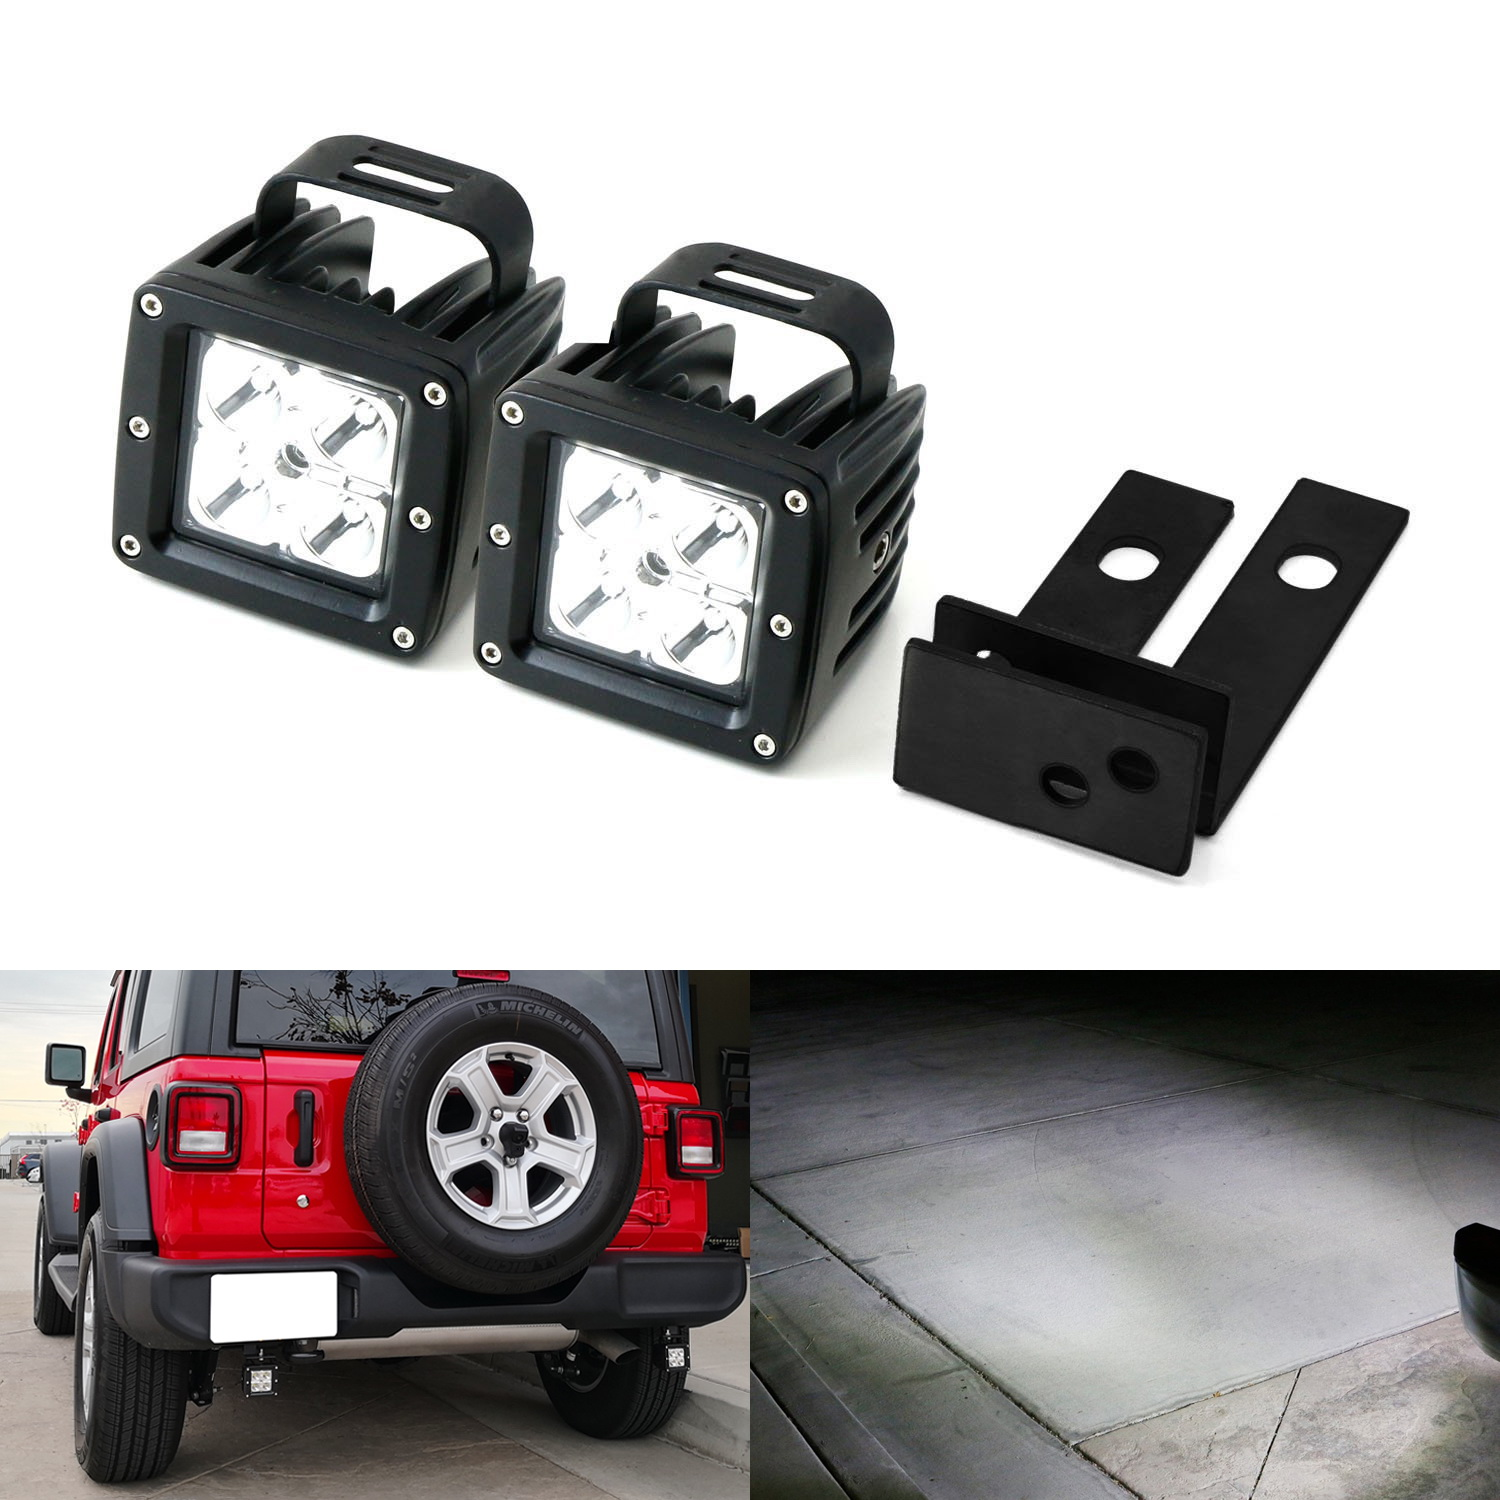 iJDMTOY Complete 40W High Power CREE LED Pods w/ Rear Bumper Frame on 1998 dodge neon wiring harness, 1998 nissan maxima wiring harness, 2000 jeep grand cherokee wiring harness, 1999 jeep grand cherokee wiring harness, 98 jeep wrangler wiring harness, 1986 jeep cj7 wiring harness, 1998 lincoln town car wiring harness, 1998 chevy suburban wiring harness, 2002 jeep wrangler wiring harness, 1997 jeep grand cherokee wiring harness, 2006 jeep wrangler wiring harness, 2007 jeep wrangler wiring harness, 1994 jeep wrangler wiring harness, 2005 jeep wrangler wiring harness, 1988 jeep wrangler wiring harness, 2004 jeep grand cherokee wiring harness, 2011 jeep grand cherokee wiring harness, 1998 jeep grand cherokee wiring harness, 1998 dodge van wiring harness, 1998 ford expedition wiring harness,